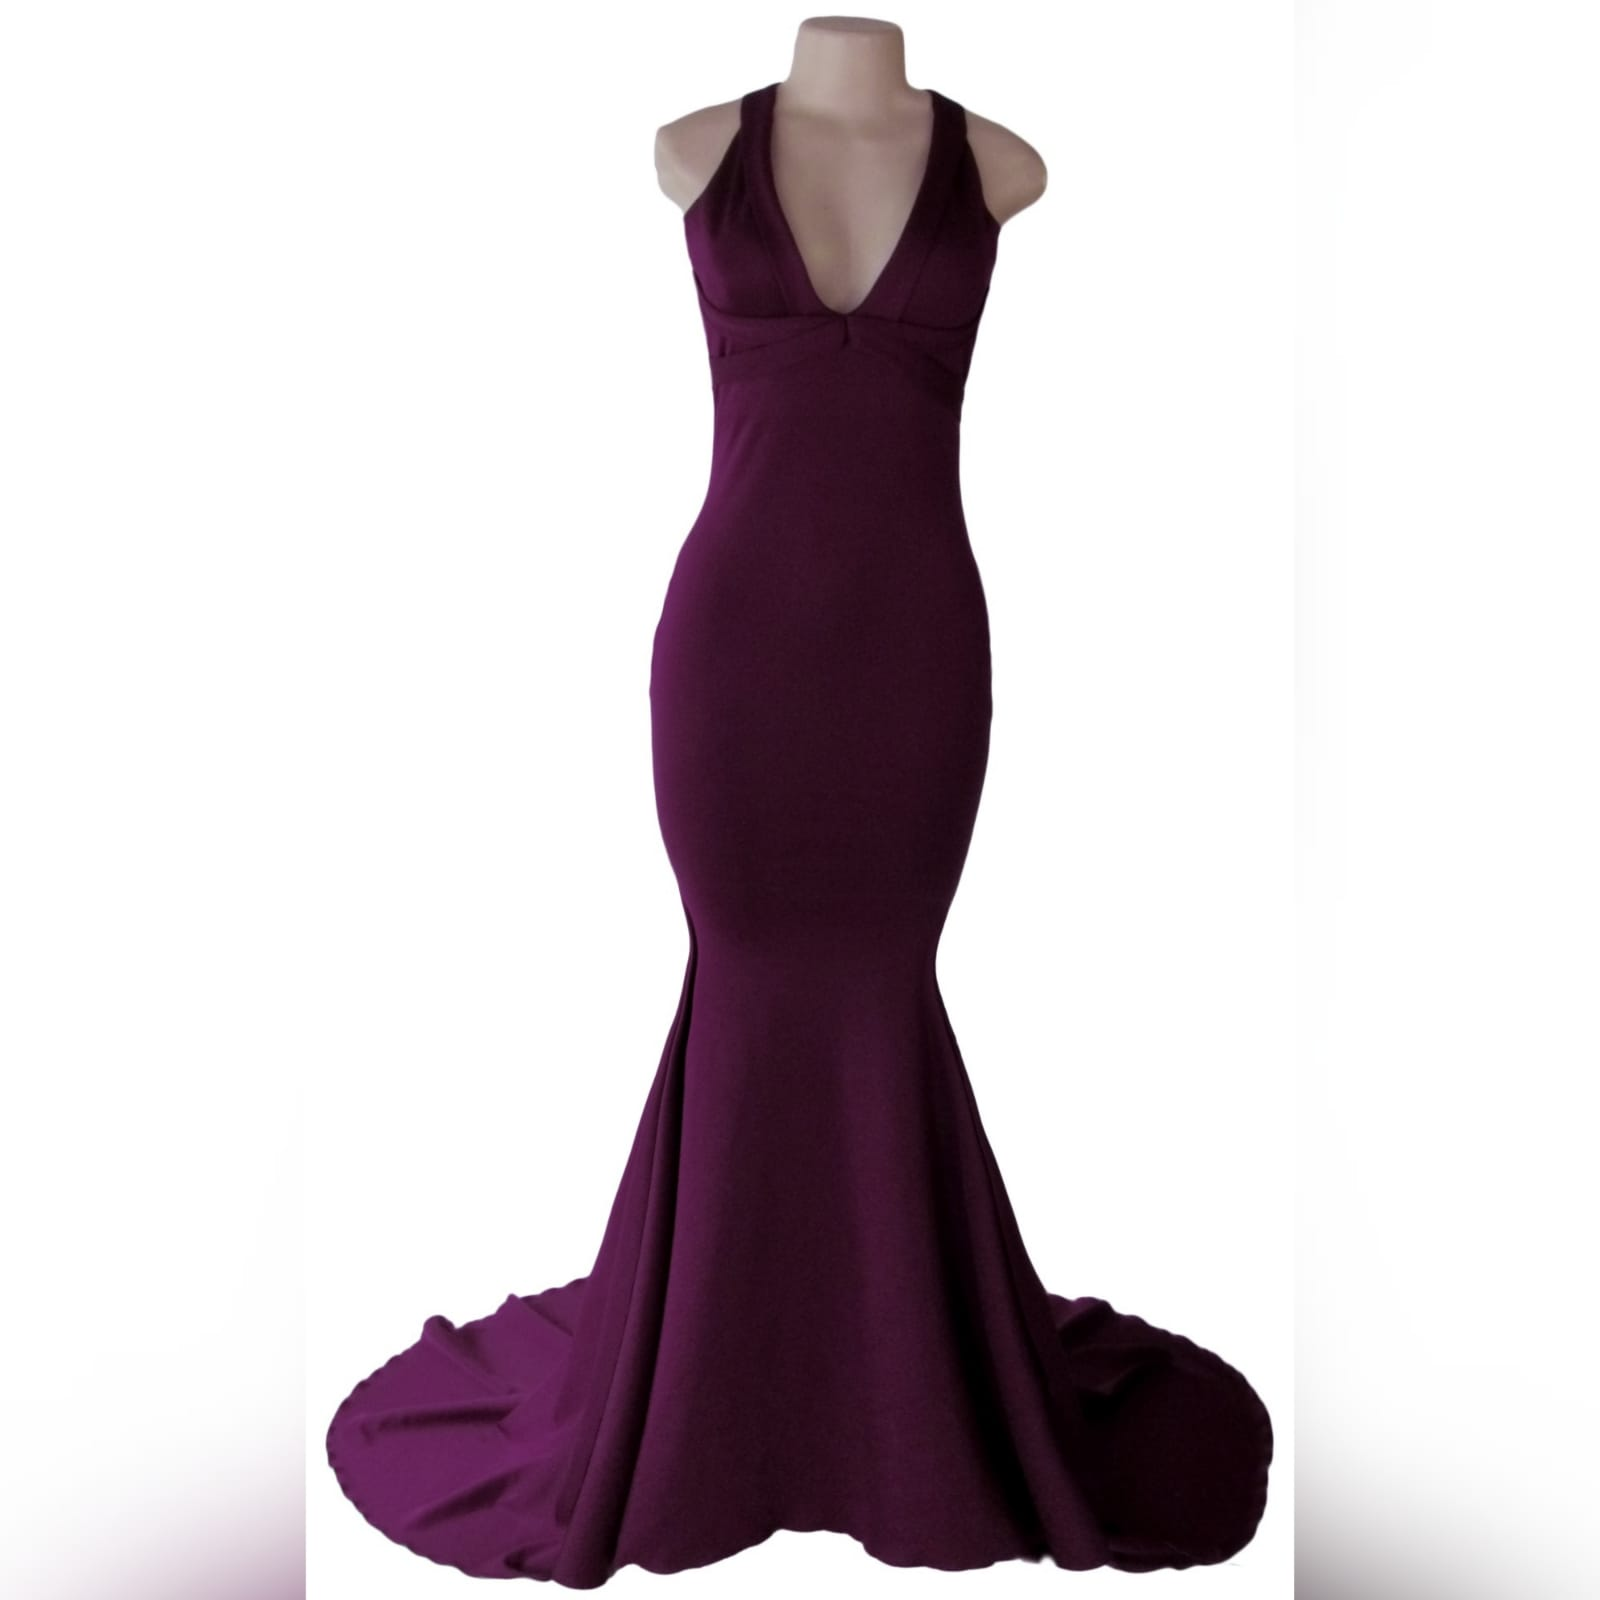 Plum soft mermaid sexy prom dress 5 plum soft mermaid sexy prom dress. With a plunging neckline, naked back with strap details and long train.